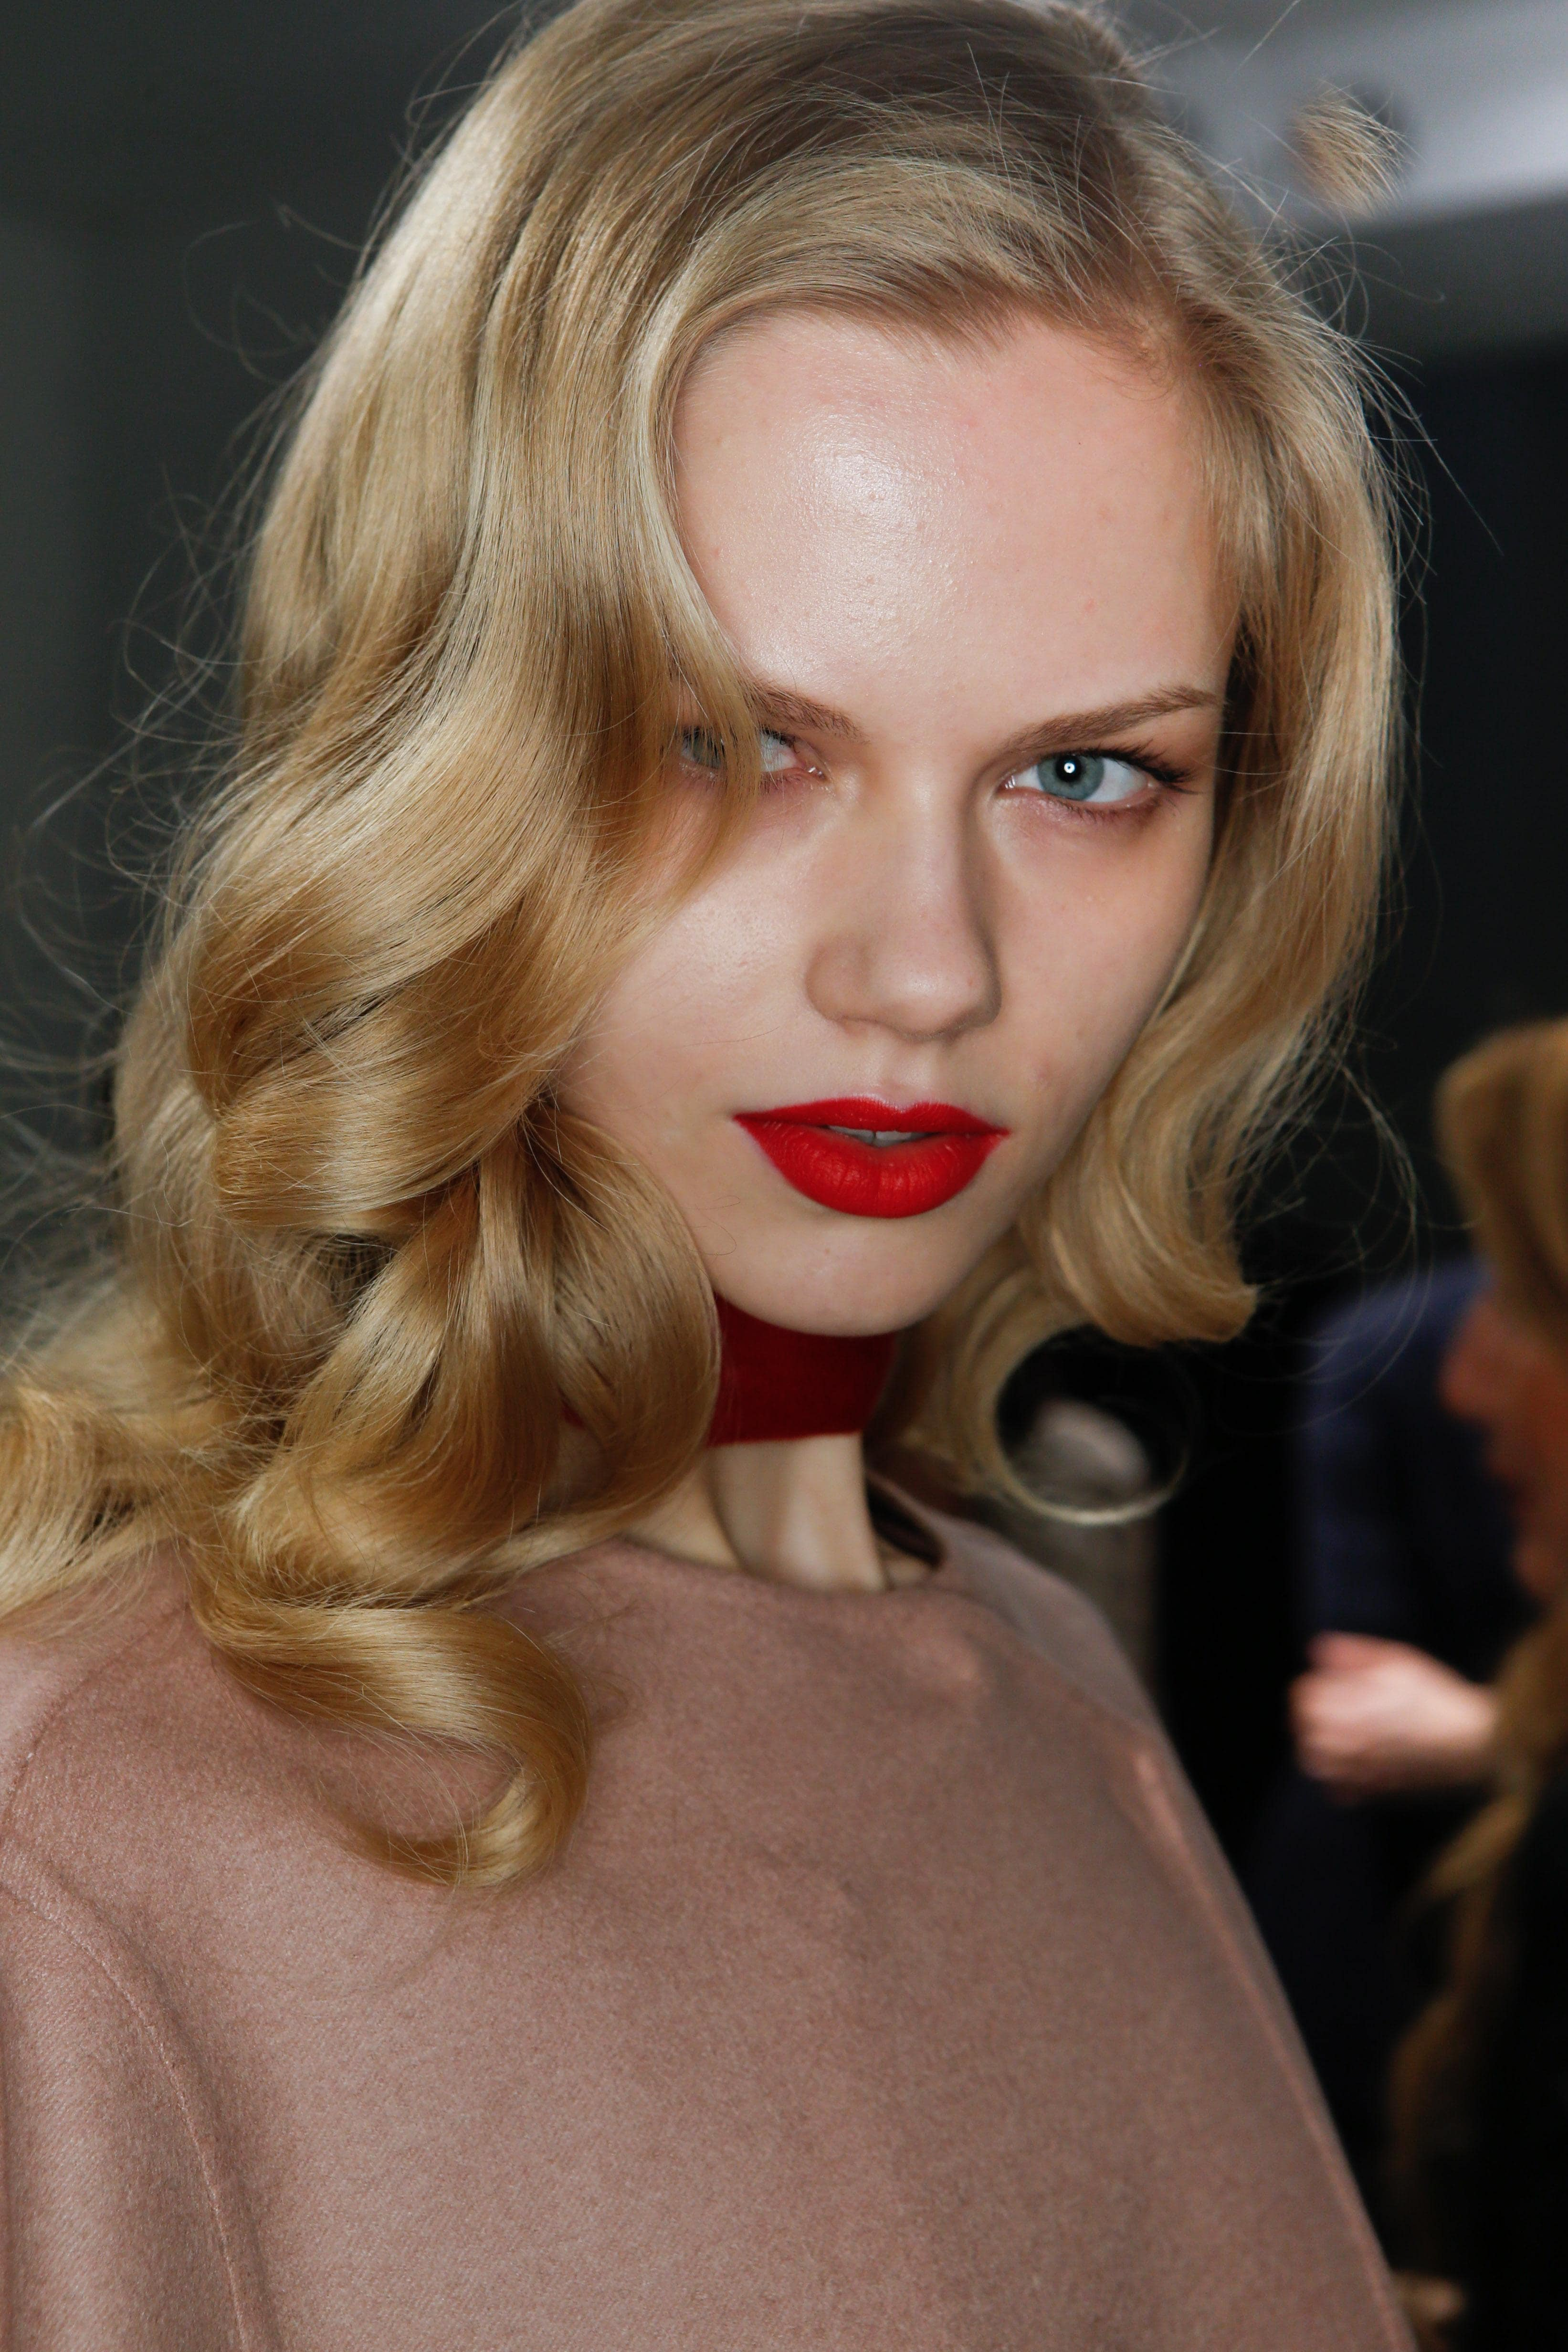 front image of a model with blonde vintage waves